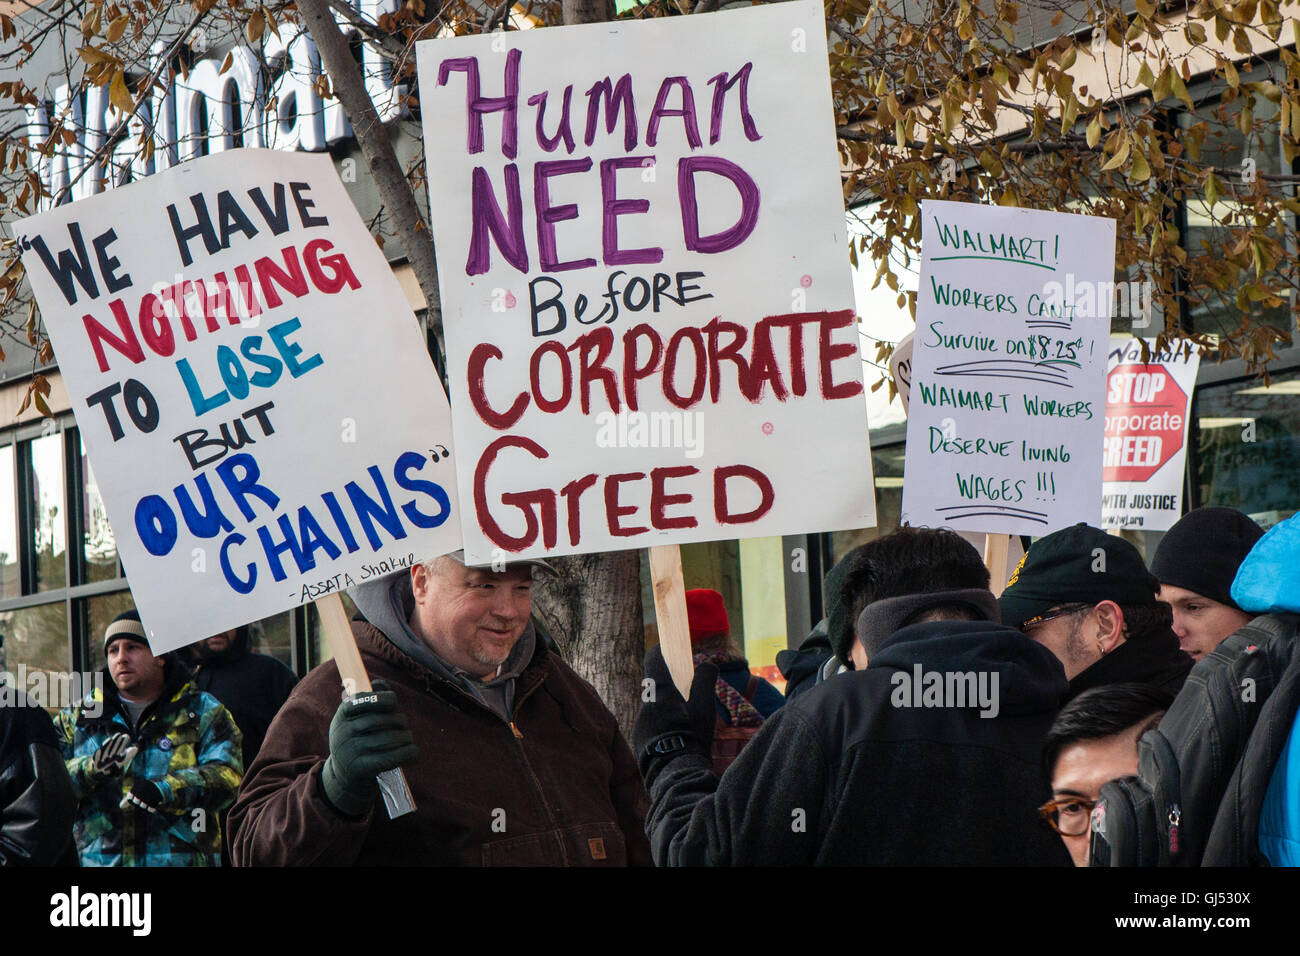 Chicago, Illinois - Nov. 29, 2013: Striking Walmart workers and supporters protest outside a Walmart Market store - Stock Image